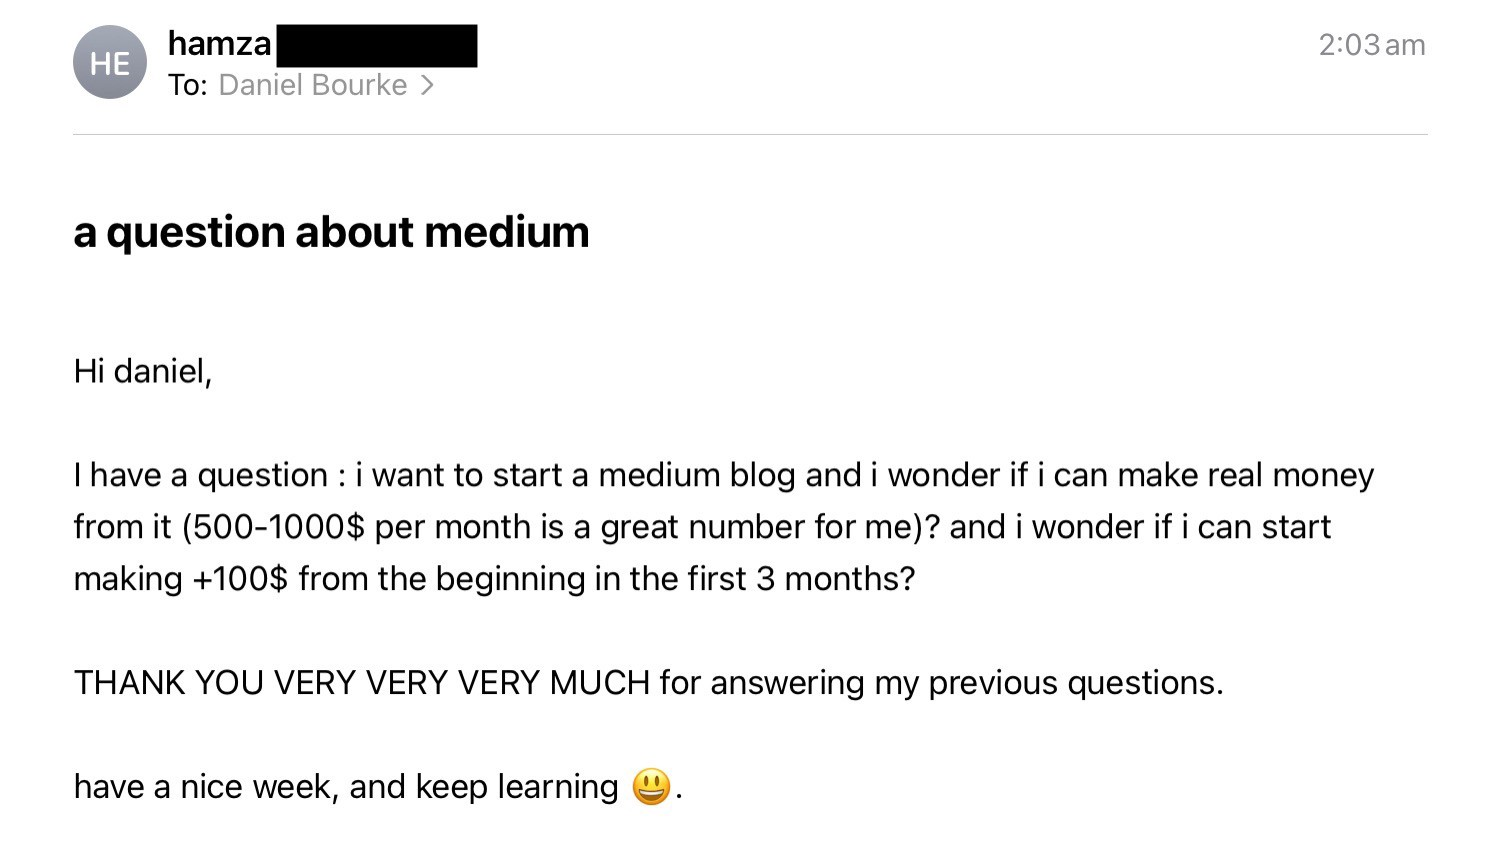 email asking if someone can start a medium blog and get paid for it